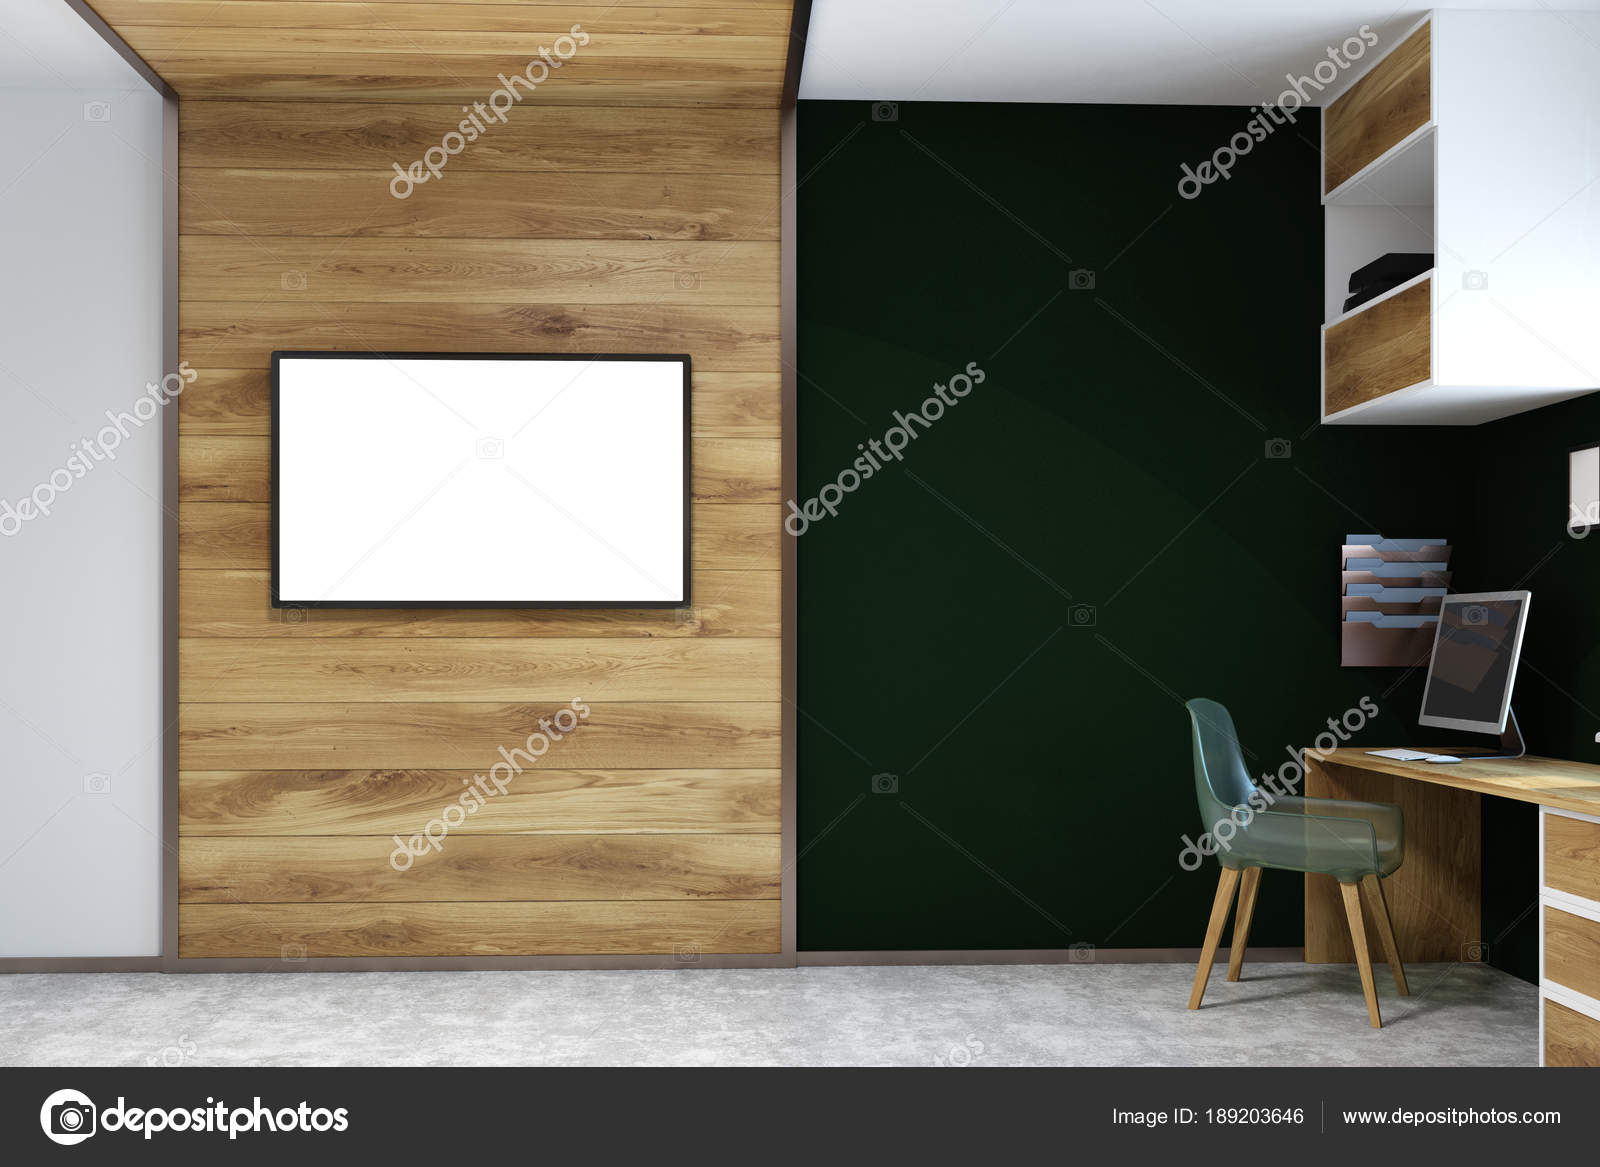 Wood Wall Behind Tv Black Wall Home Office Tv Screen Mock Up Stock Photo